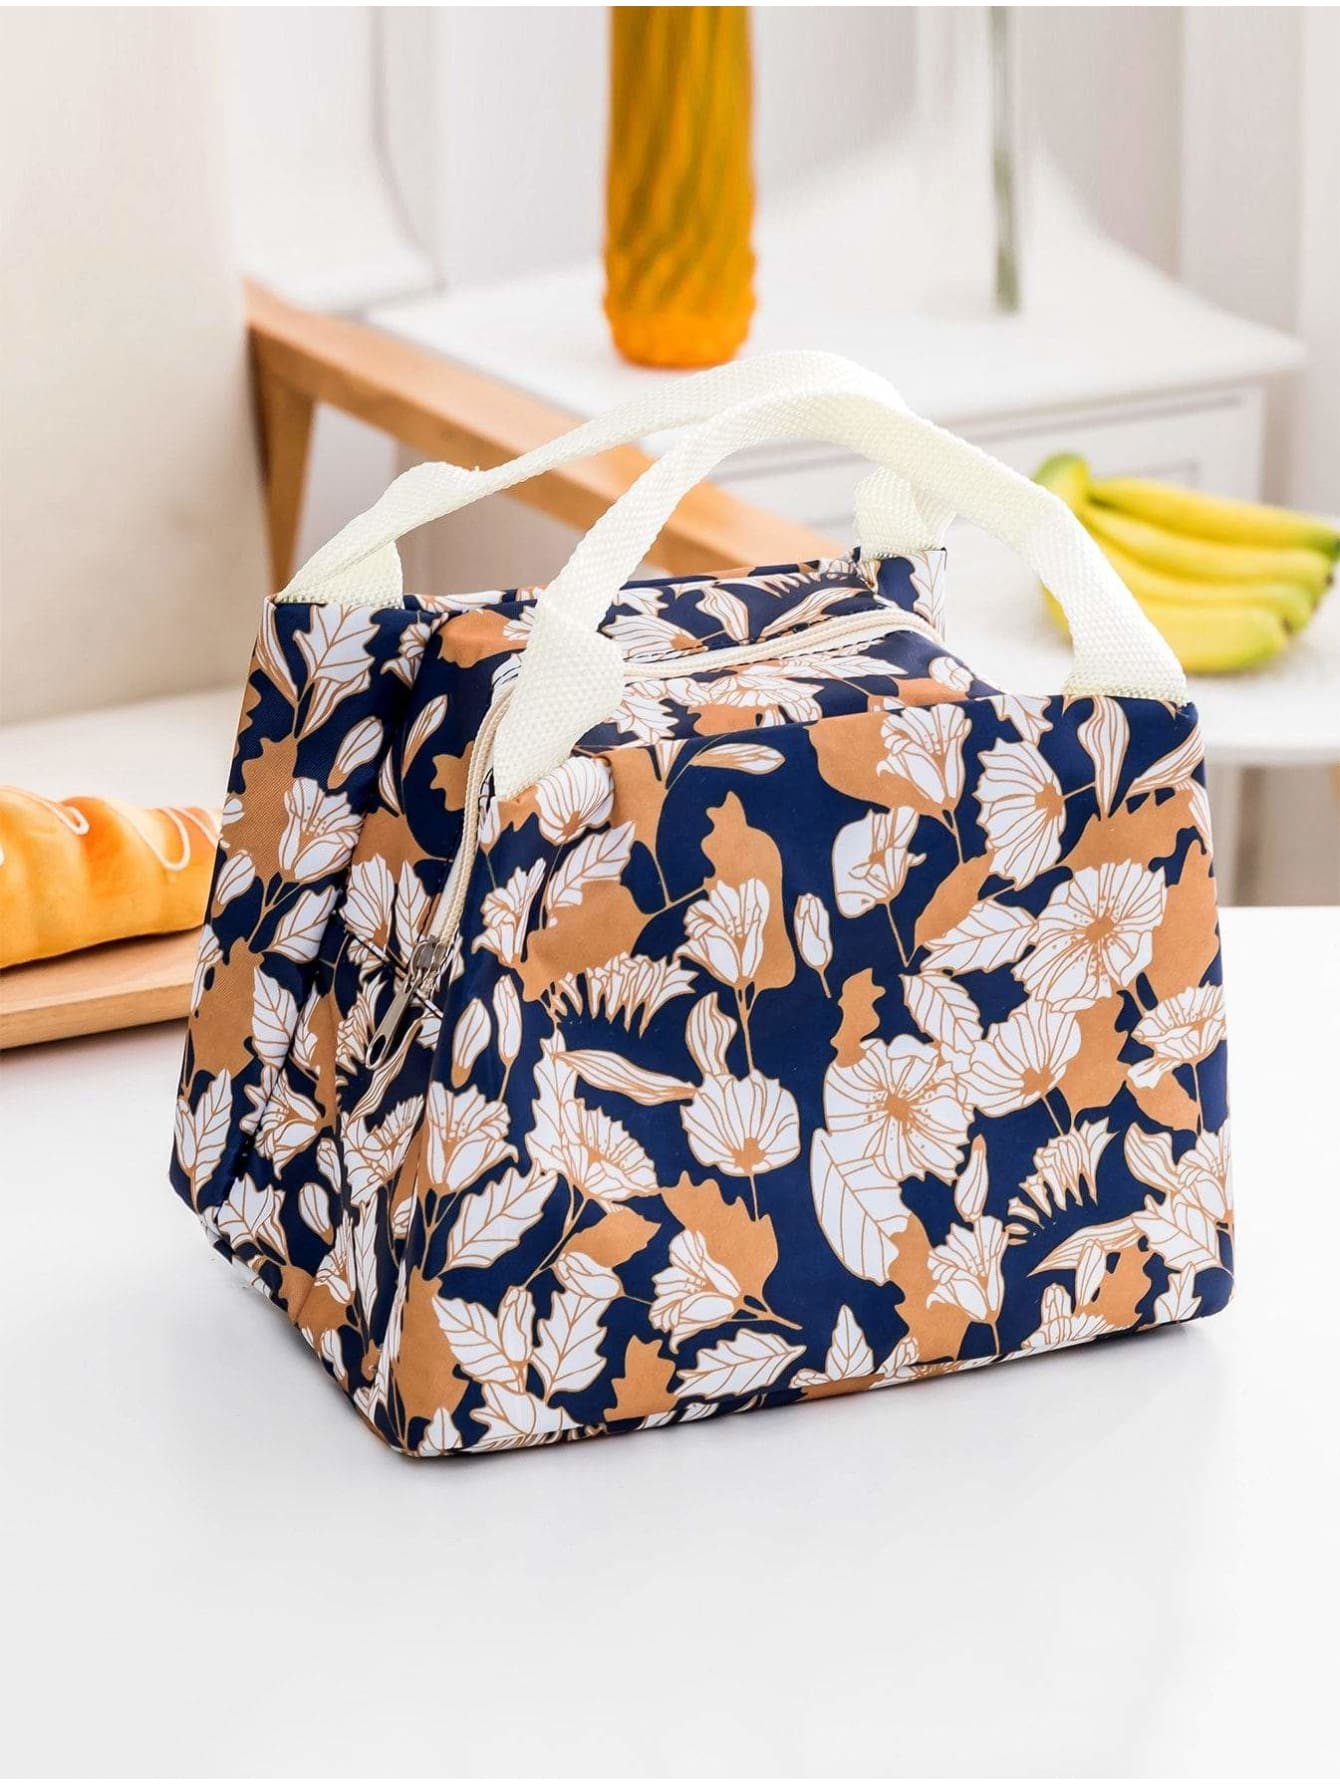 Flower Print Zipper Lunch Bag - Storage & Organization